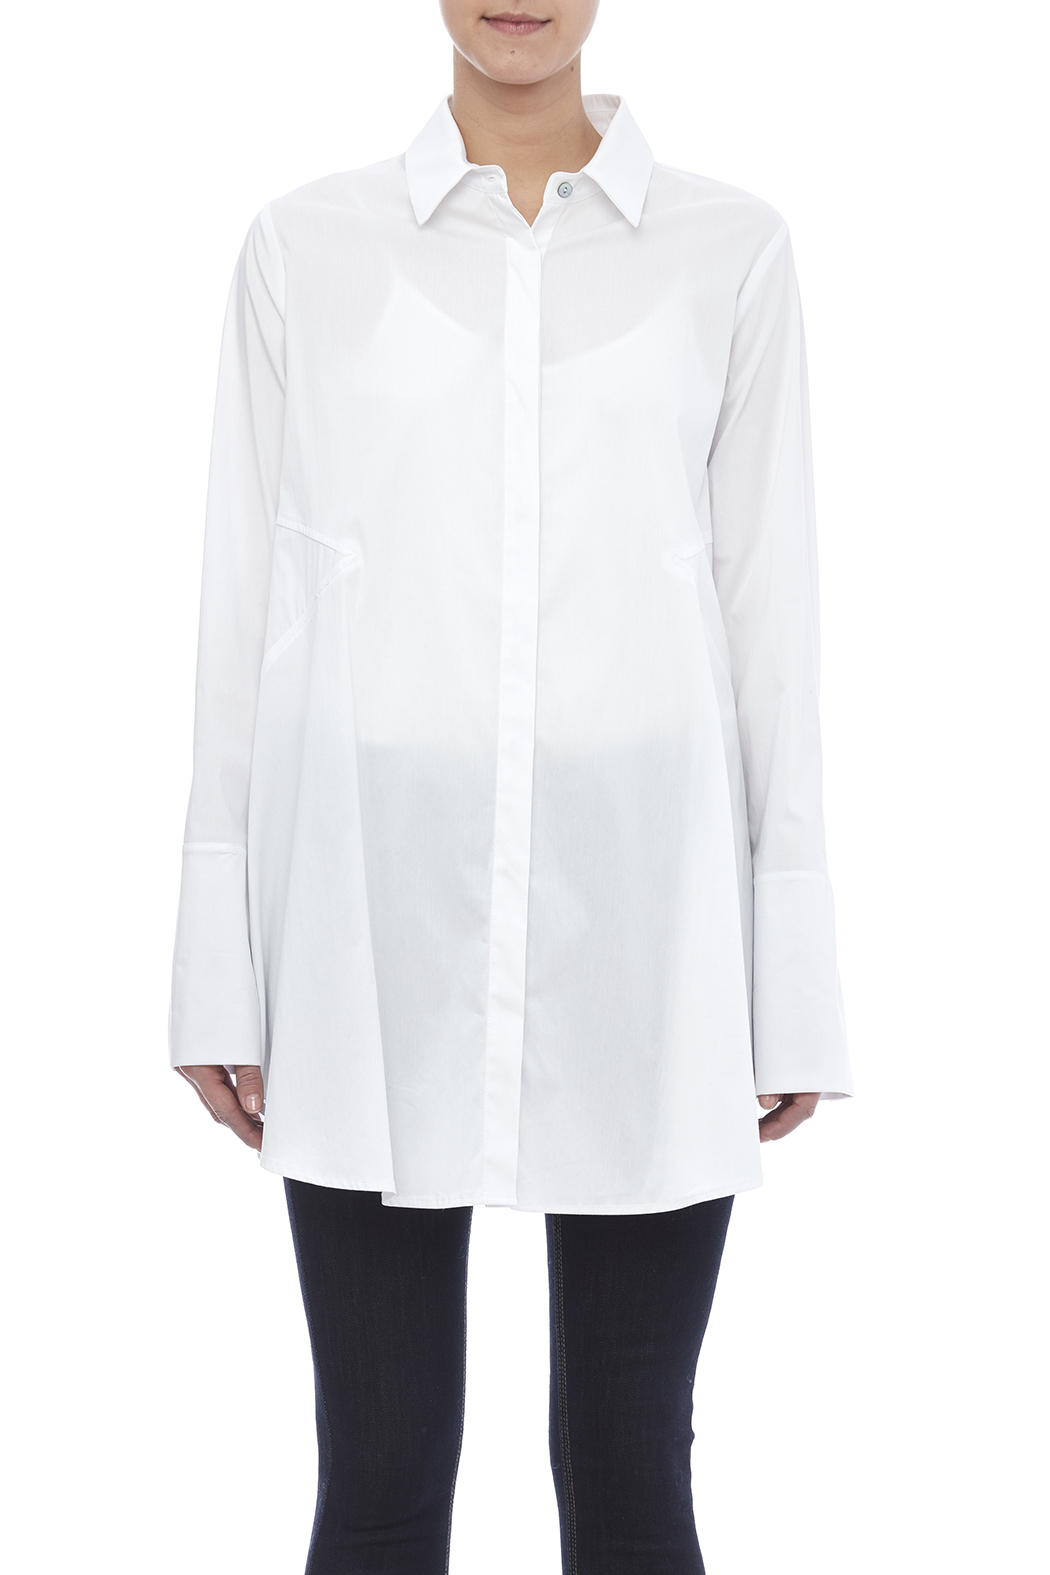 Comfy crisp white blouse from saint paul by scarborough for Crisp white cotton shirt